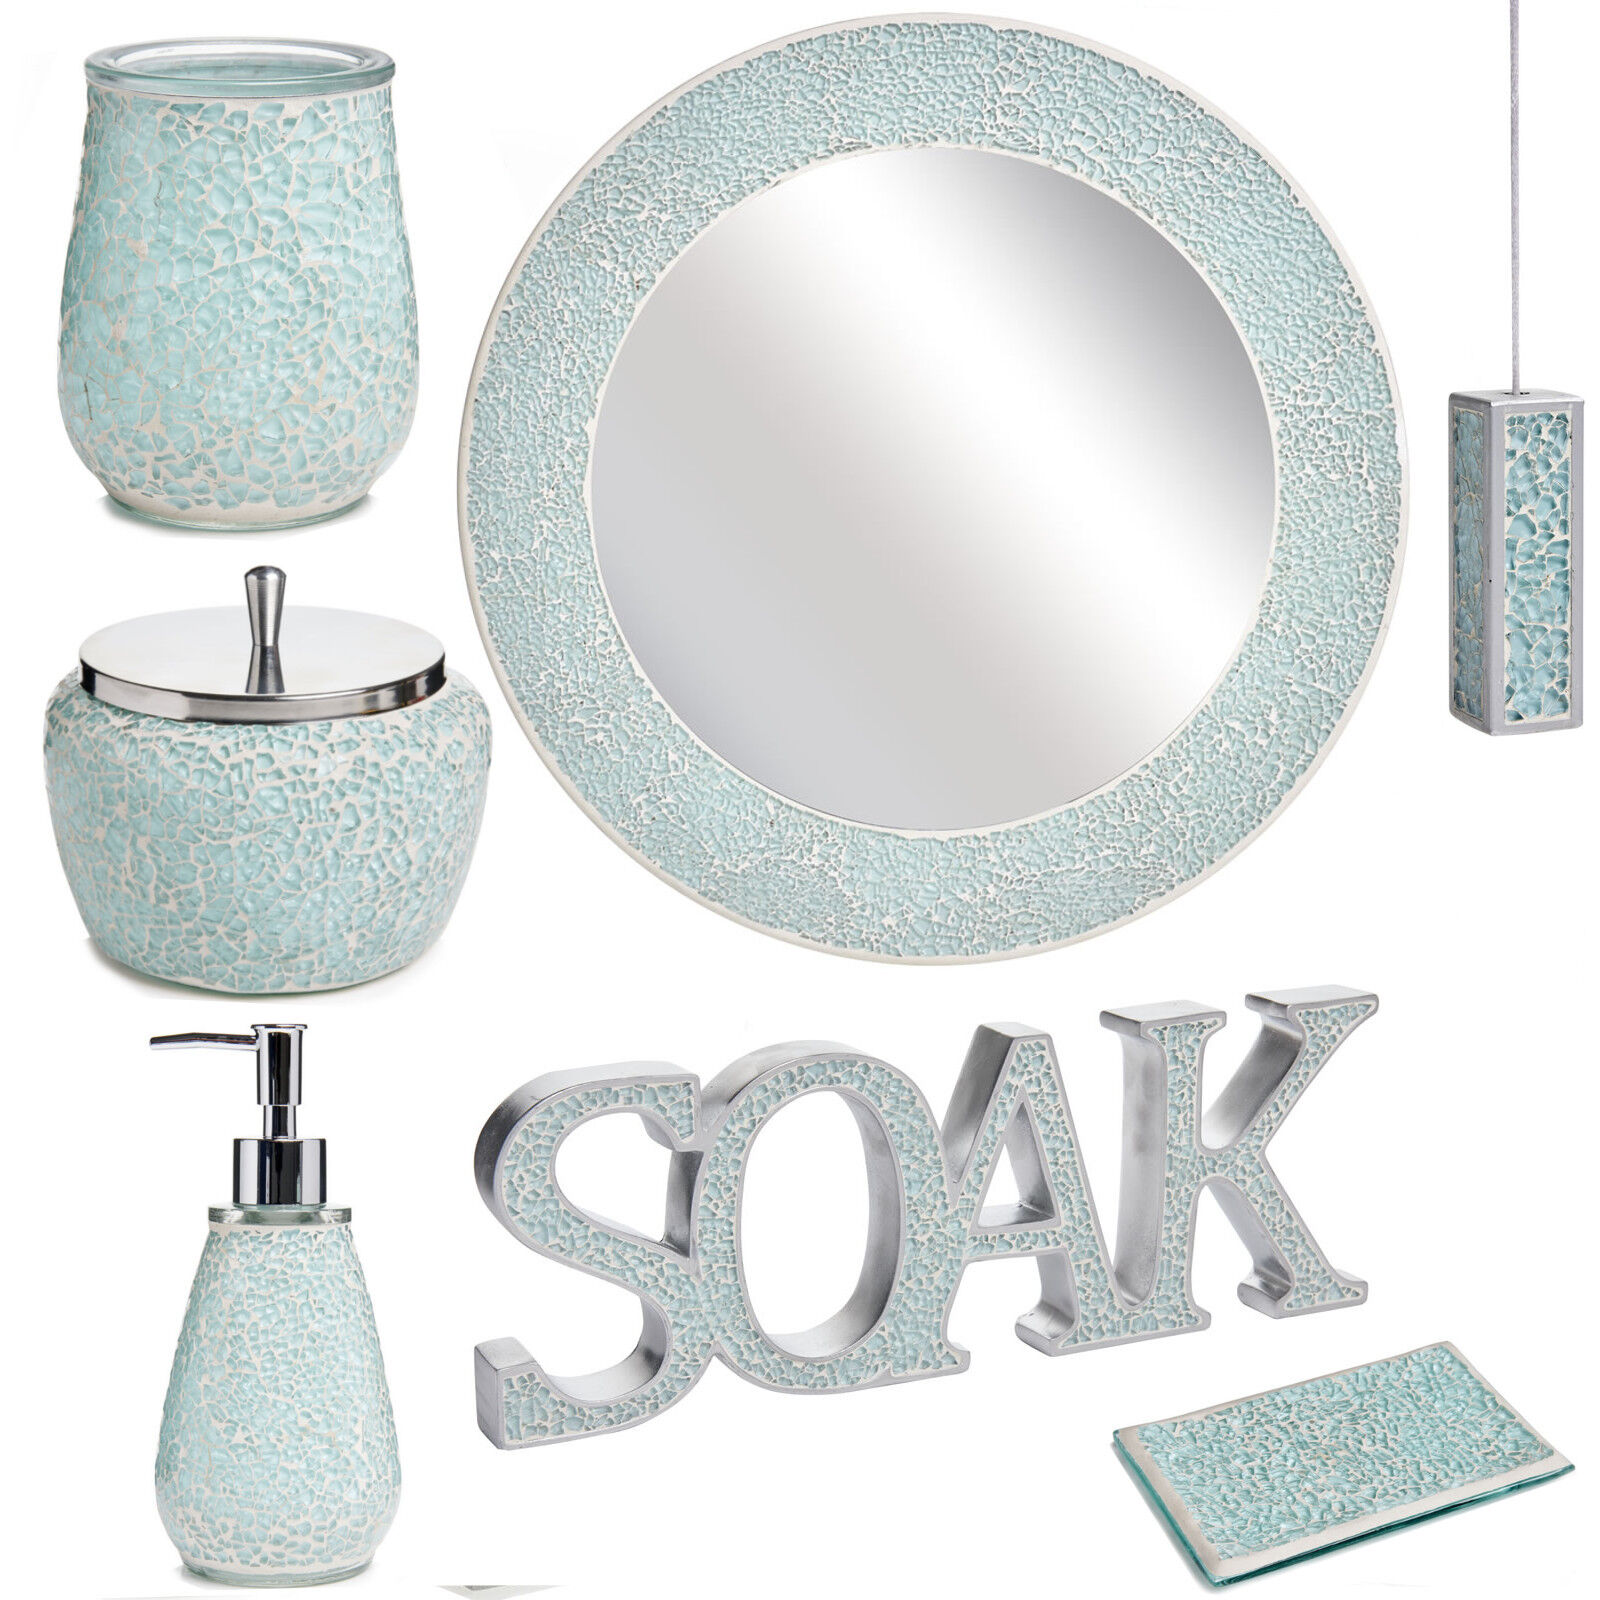 Aqua sparkle mosaic bathroom accessories set ebay for Bathroom sets and accessories